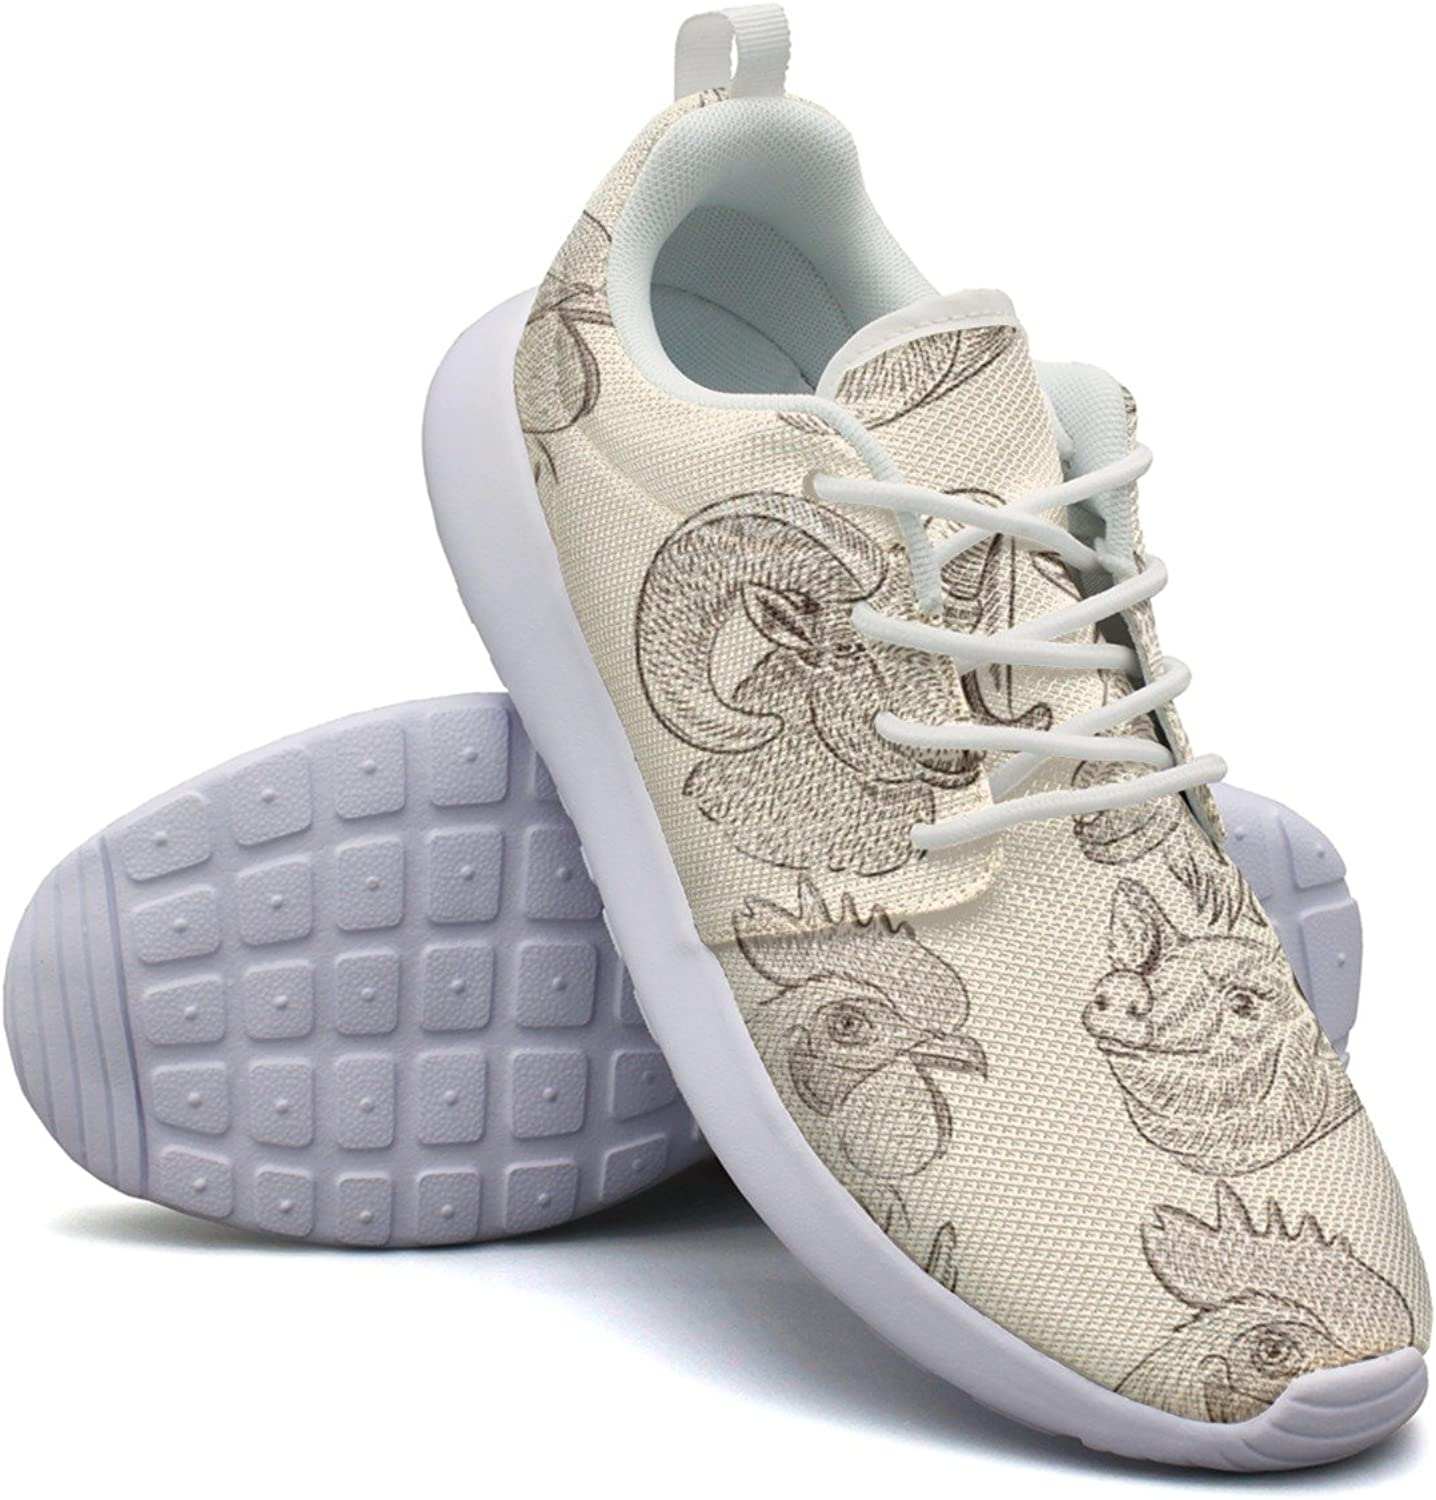 Farm Animals Pattern Cow Goat Pig Horse Rooster Sheep Women Cool Design Running shoes Cool colorful